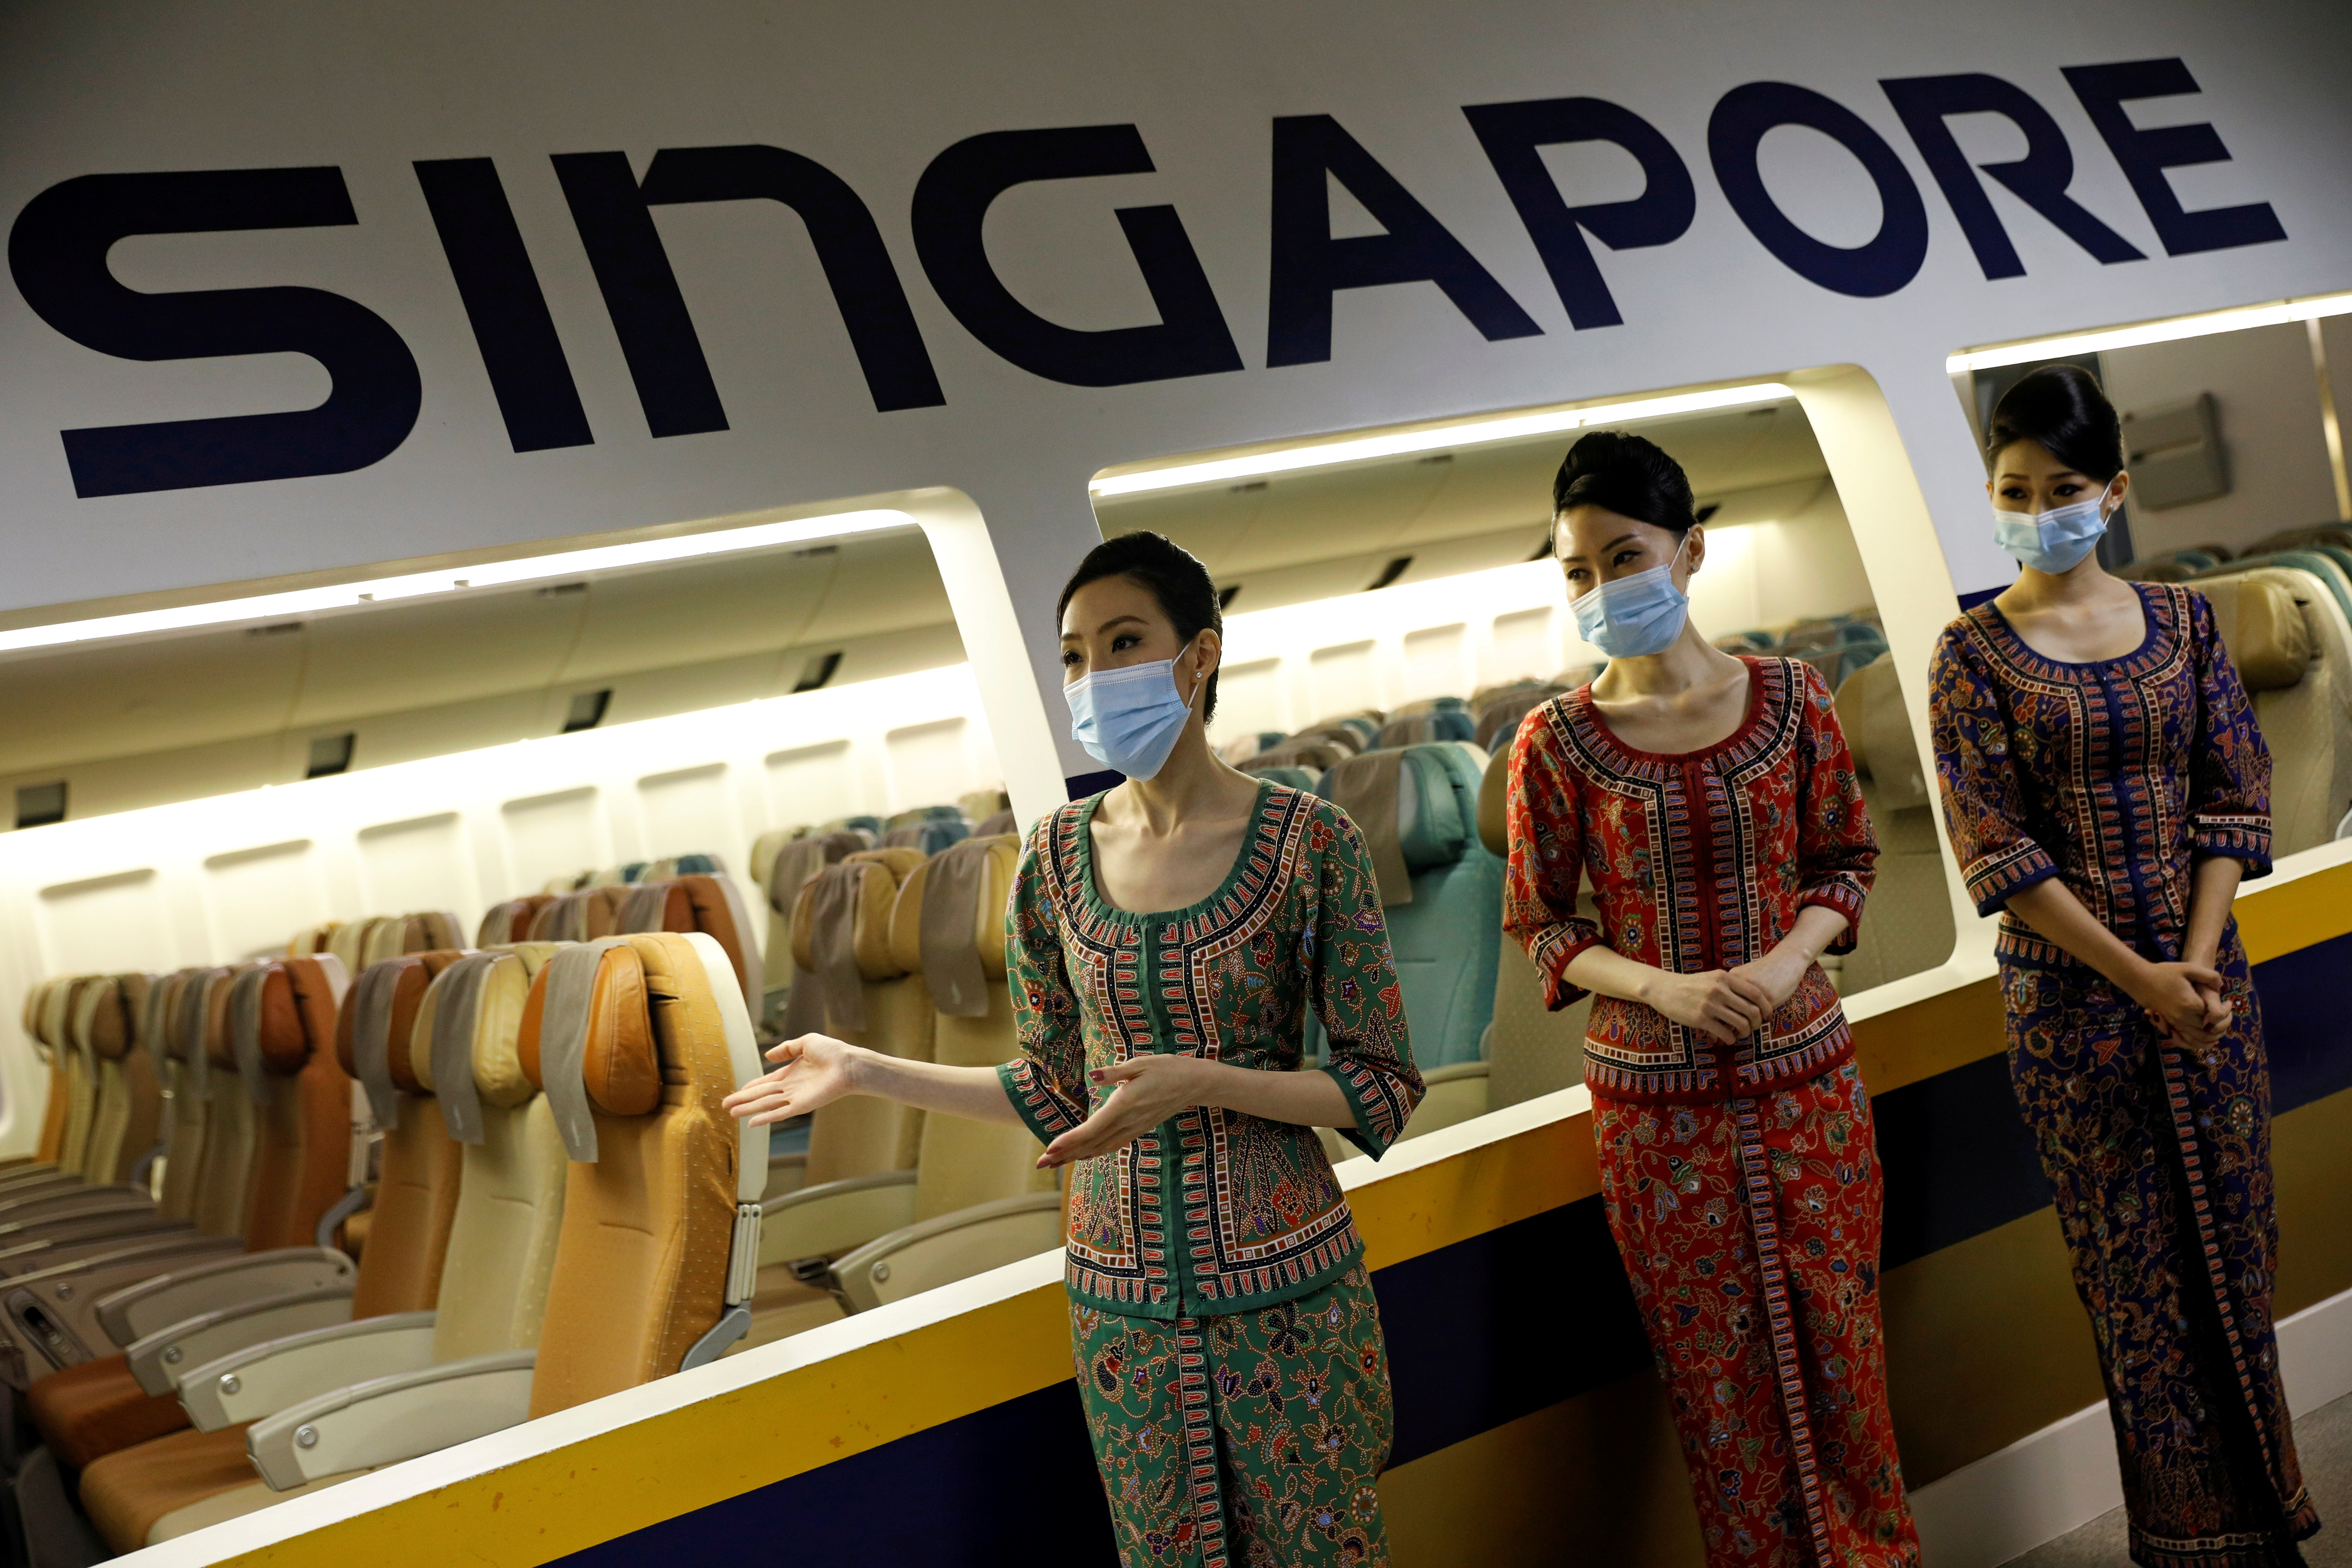 Cabin crew speak to participants during a tour of the Singapore Airlines Training Centre in Singapore November 21, 2020, as part of a series of initiatives to re-engage customers who have not been able to travel due to the coronavirus.  REUTERS/Edgar Su/File Photo